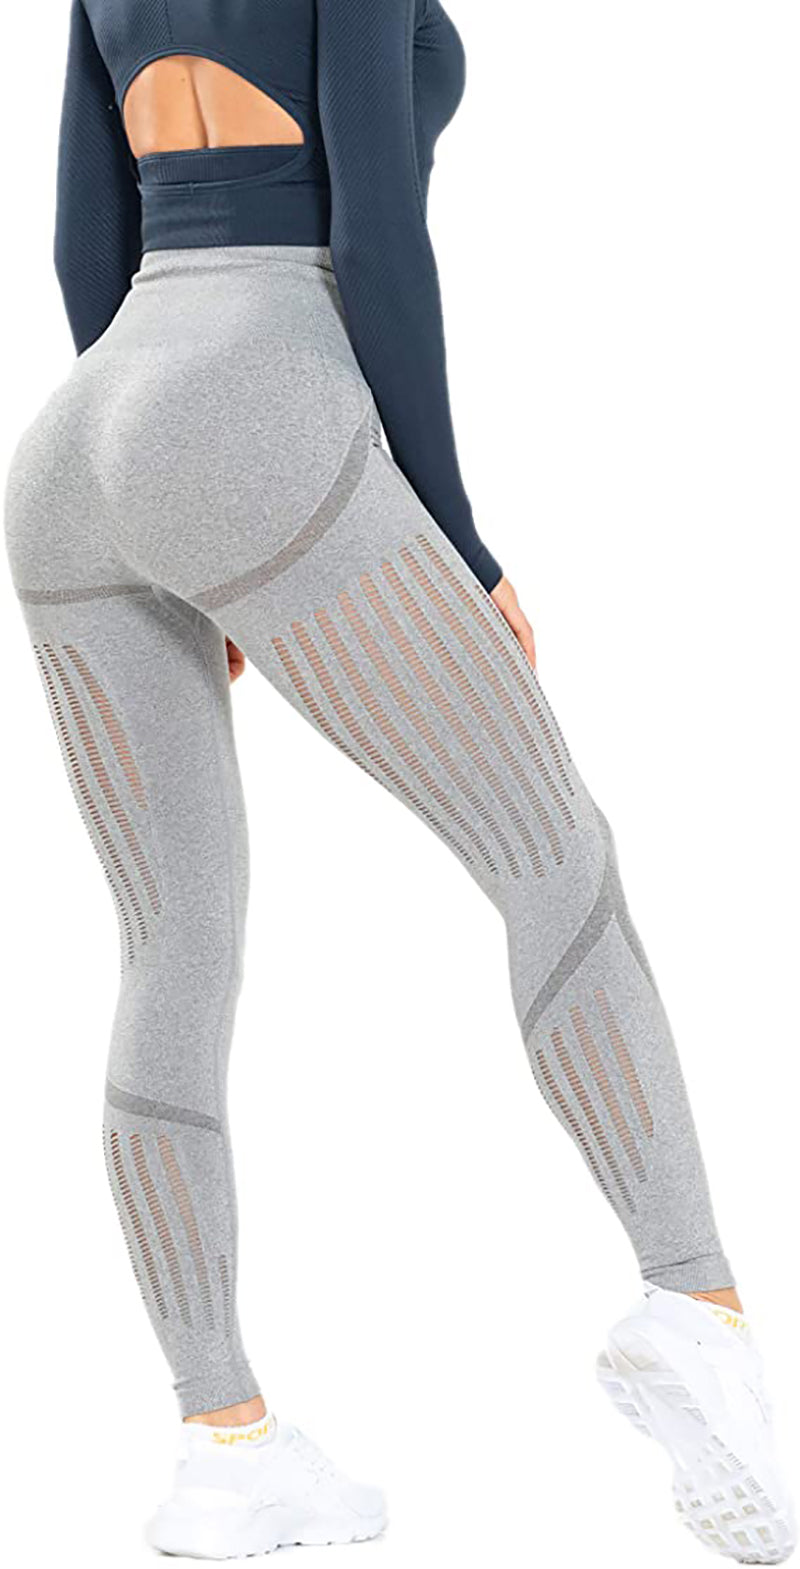 Women's High Waist Seamless Leggings Ankle Yoga Pants Squat Proof Tights